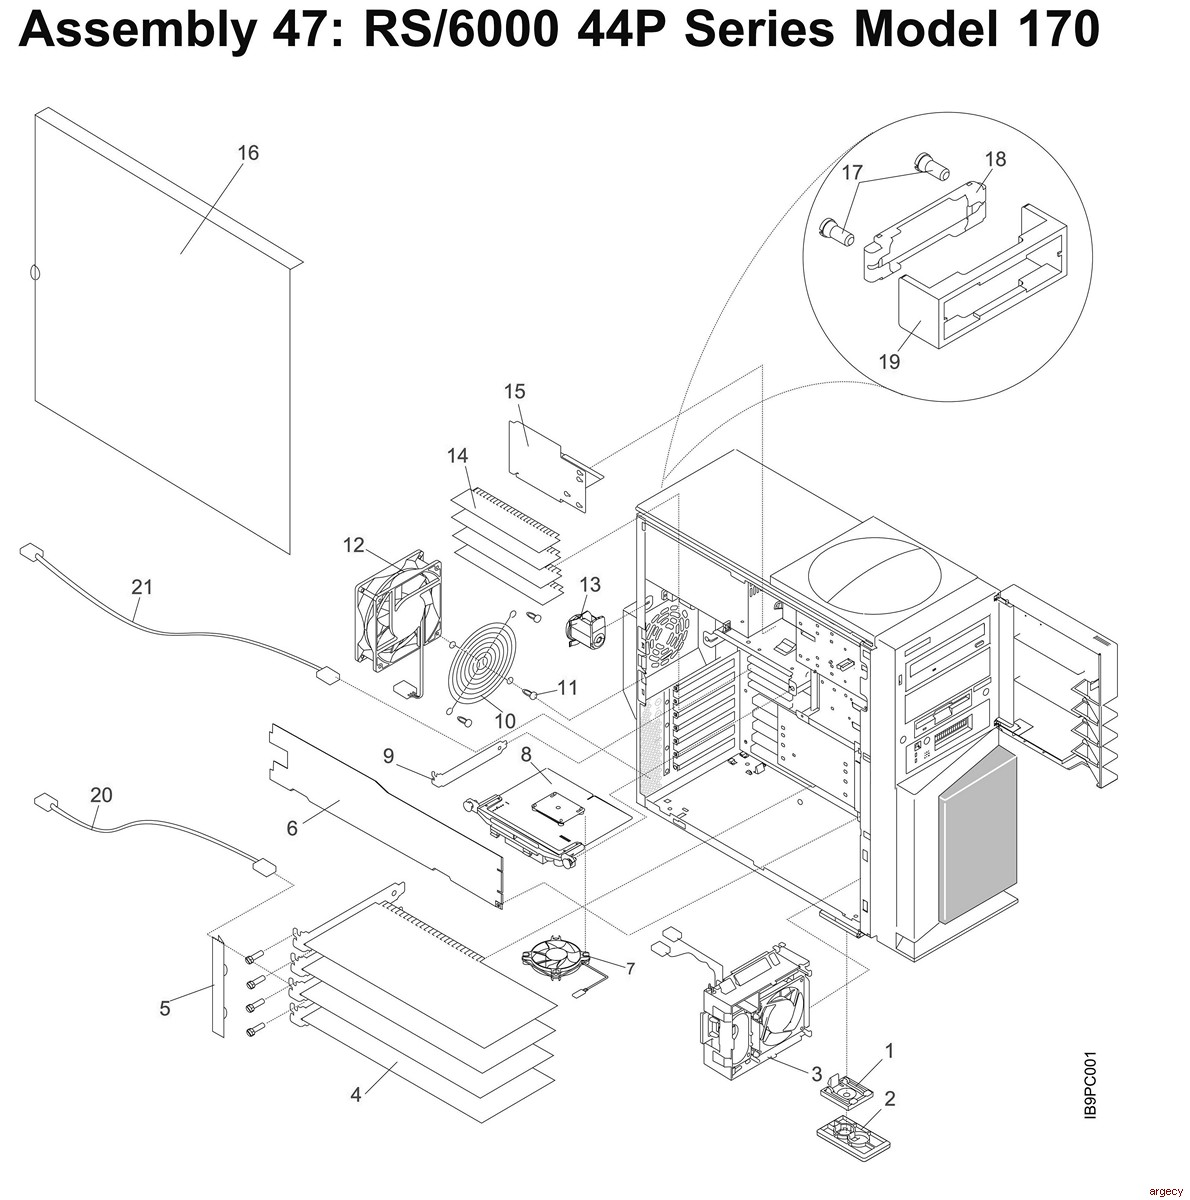 http://www.argecy.com/images/4000-parts-3409.jpg